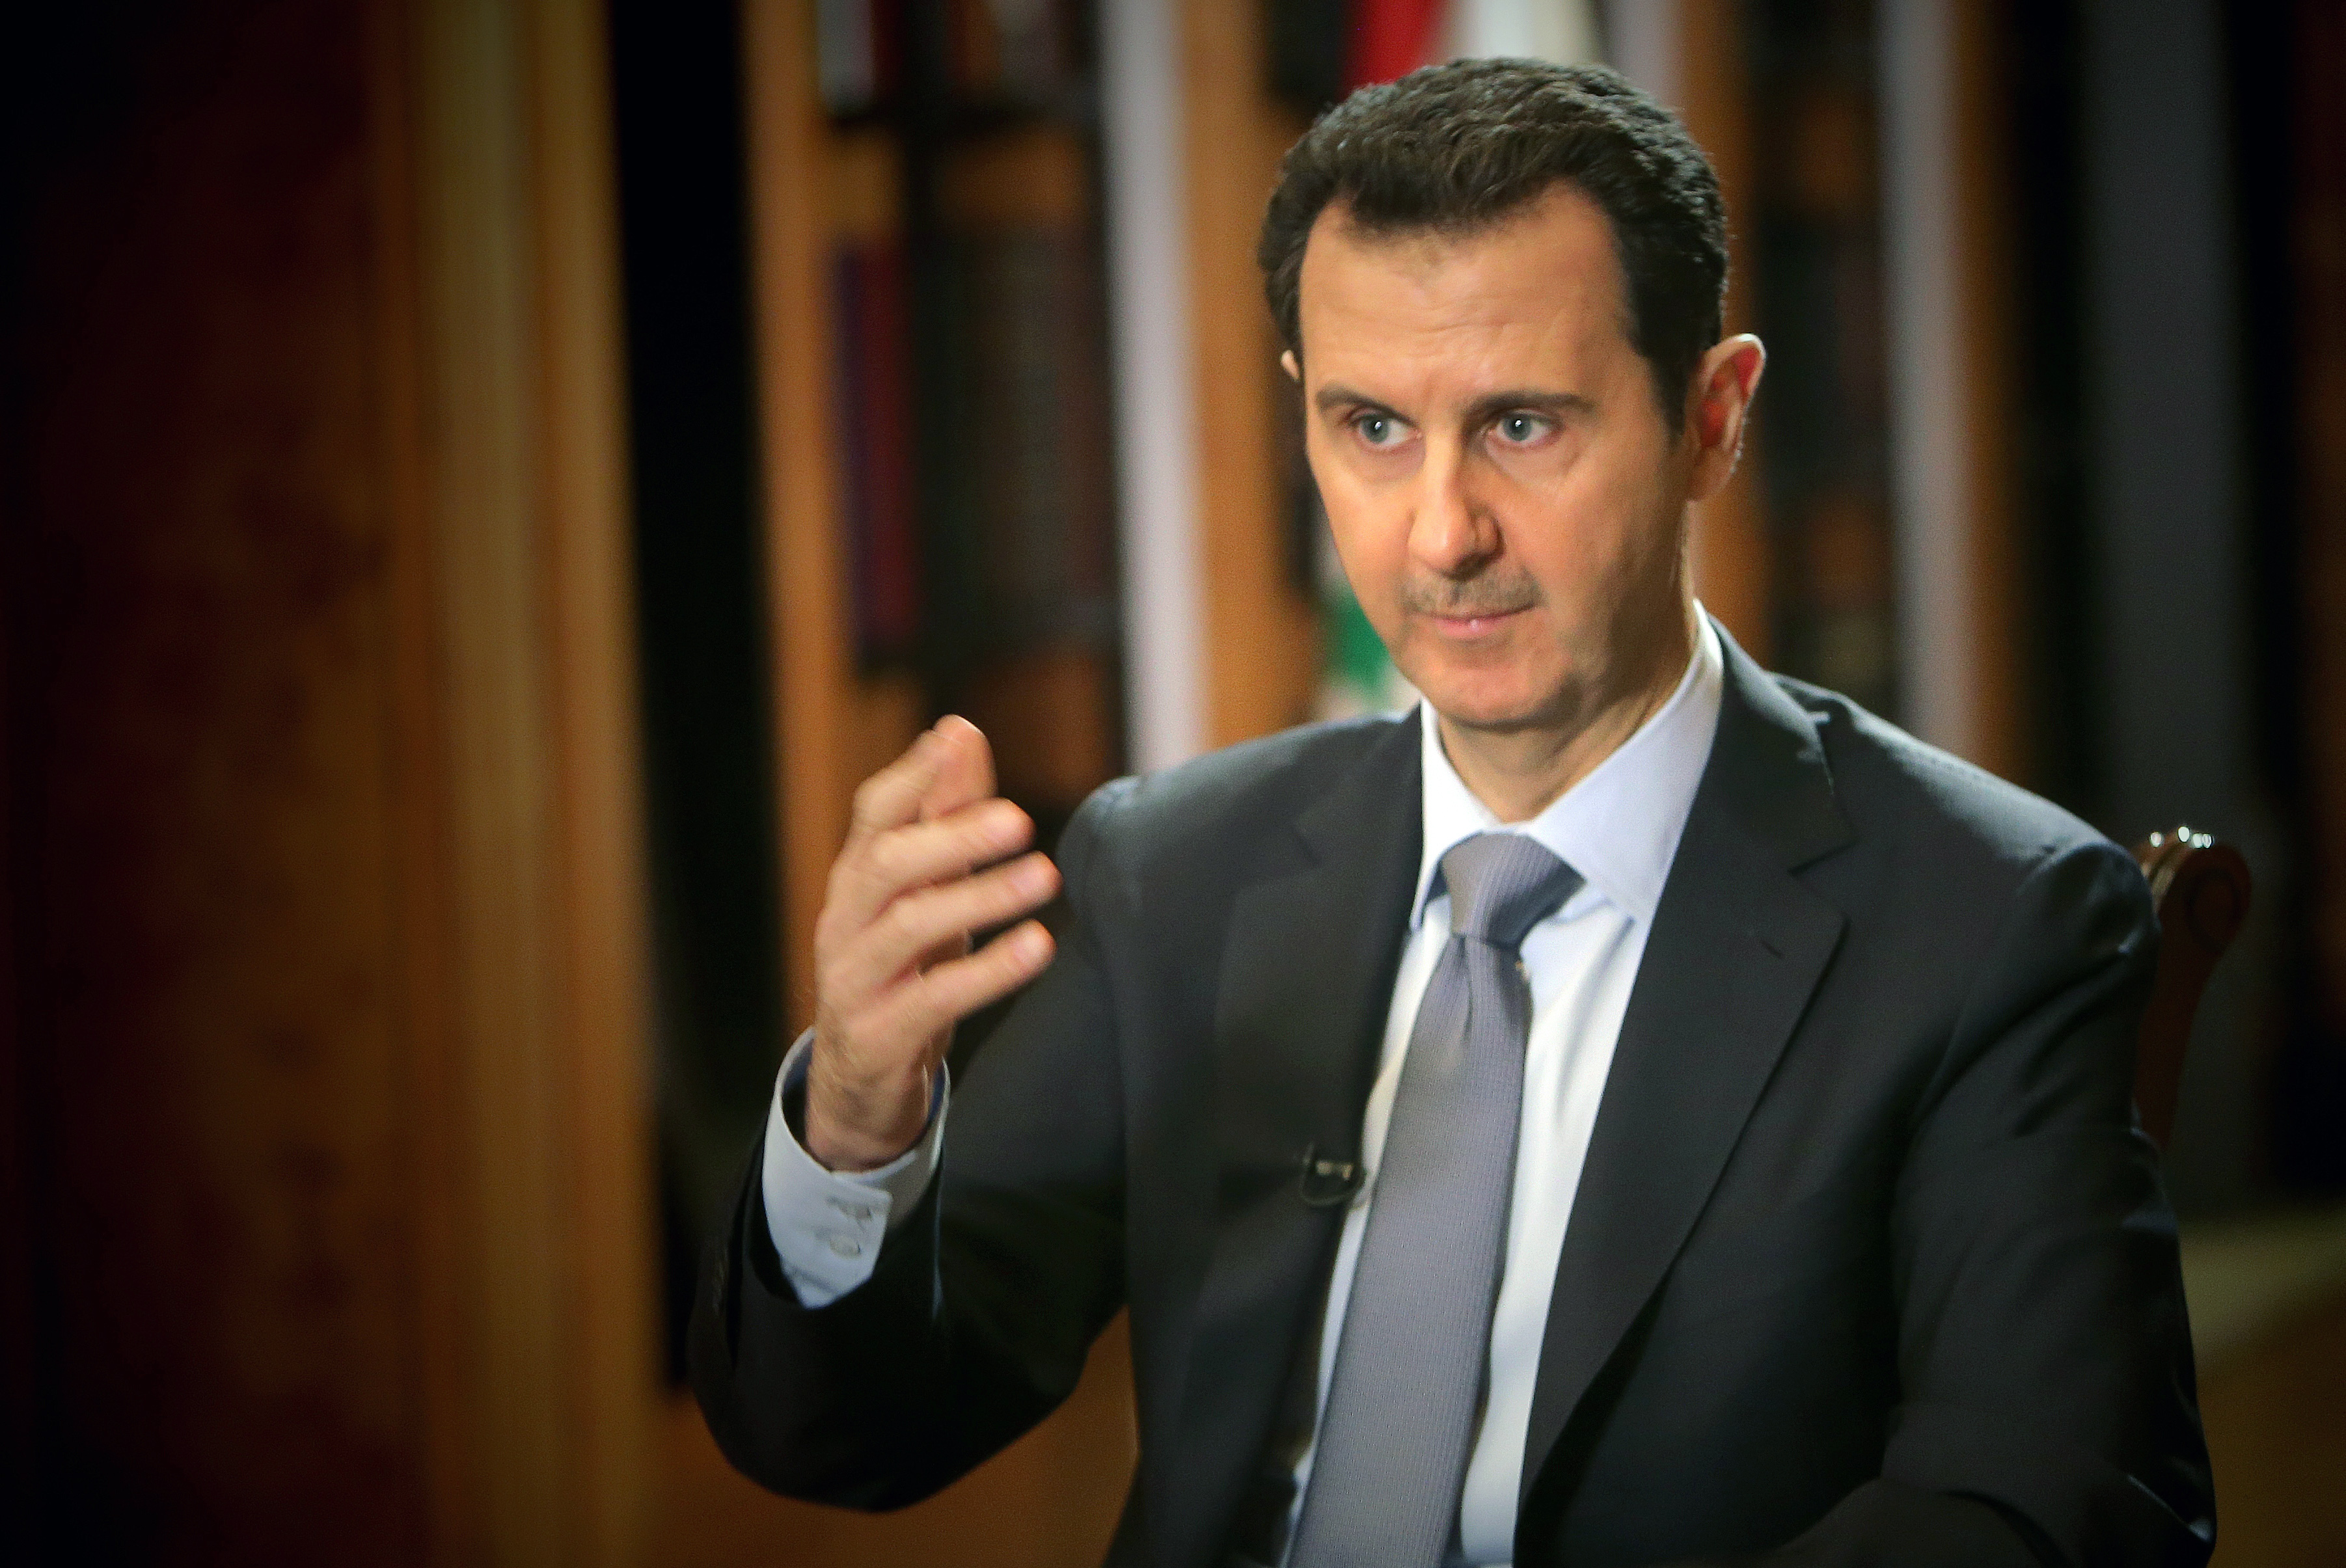 Syrian President Bashar al-Assad speaks during an interview with AFP at the presidential palace in Damascus on January 20, 2014.